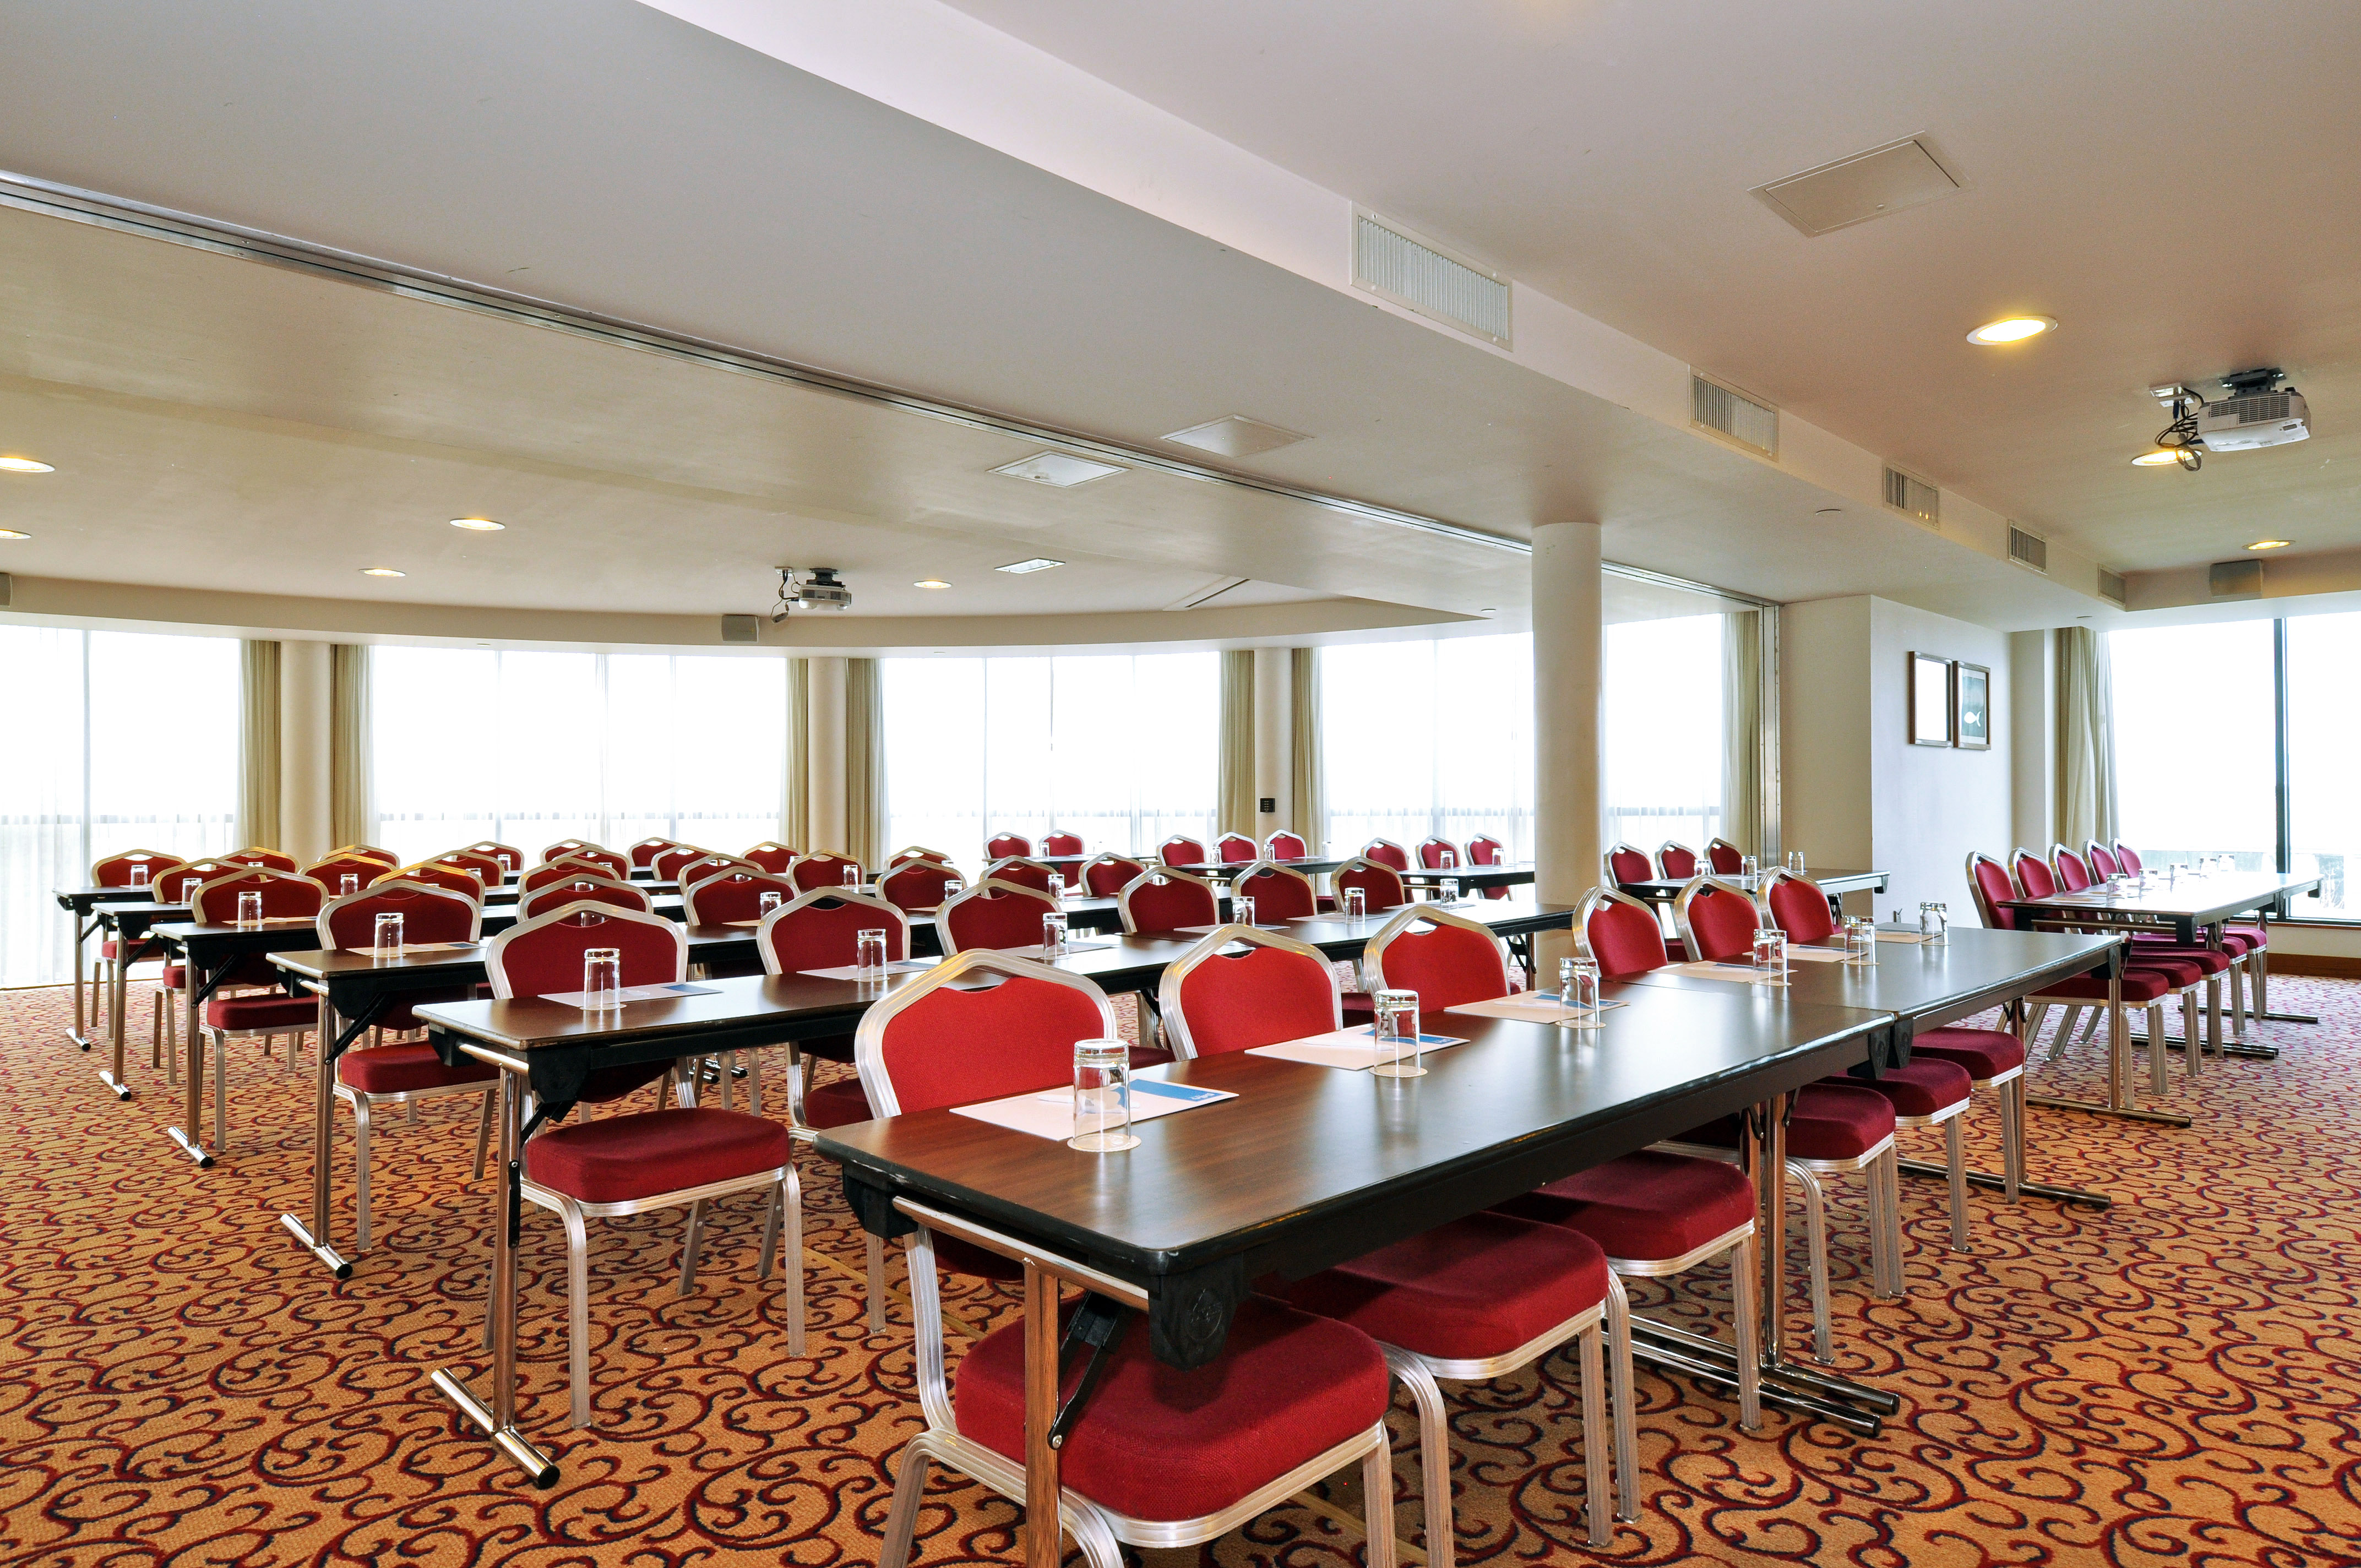 classroom-meeting-in-Maldron-Hotel-Sandy-Road